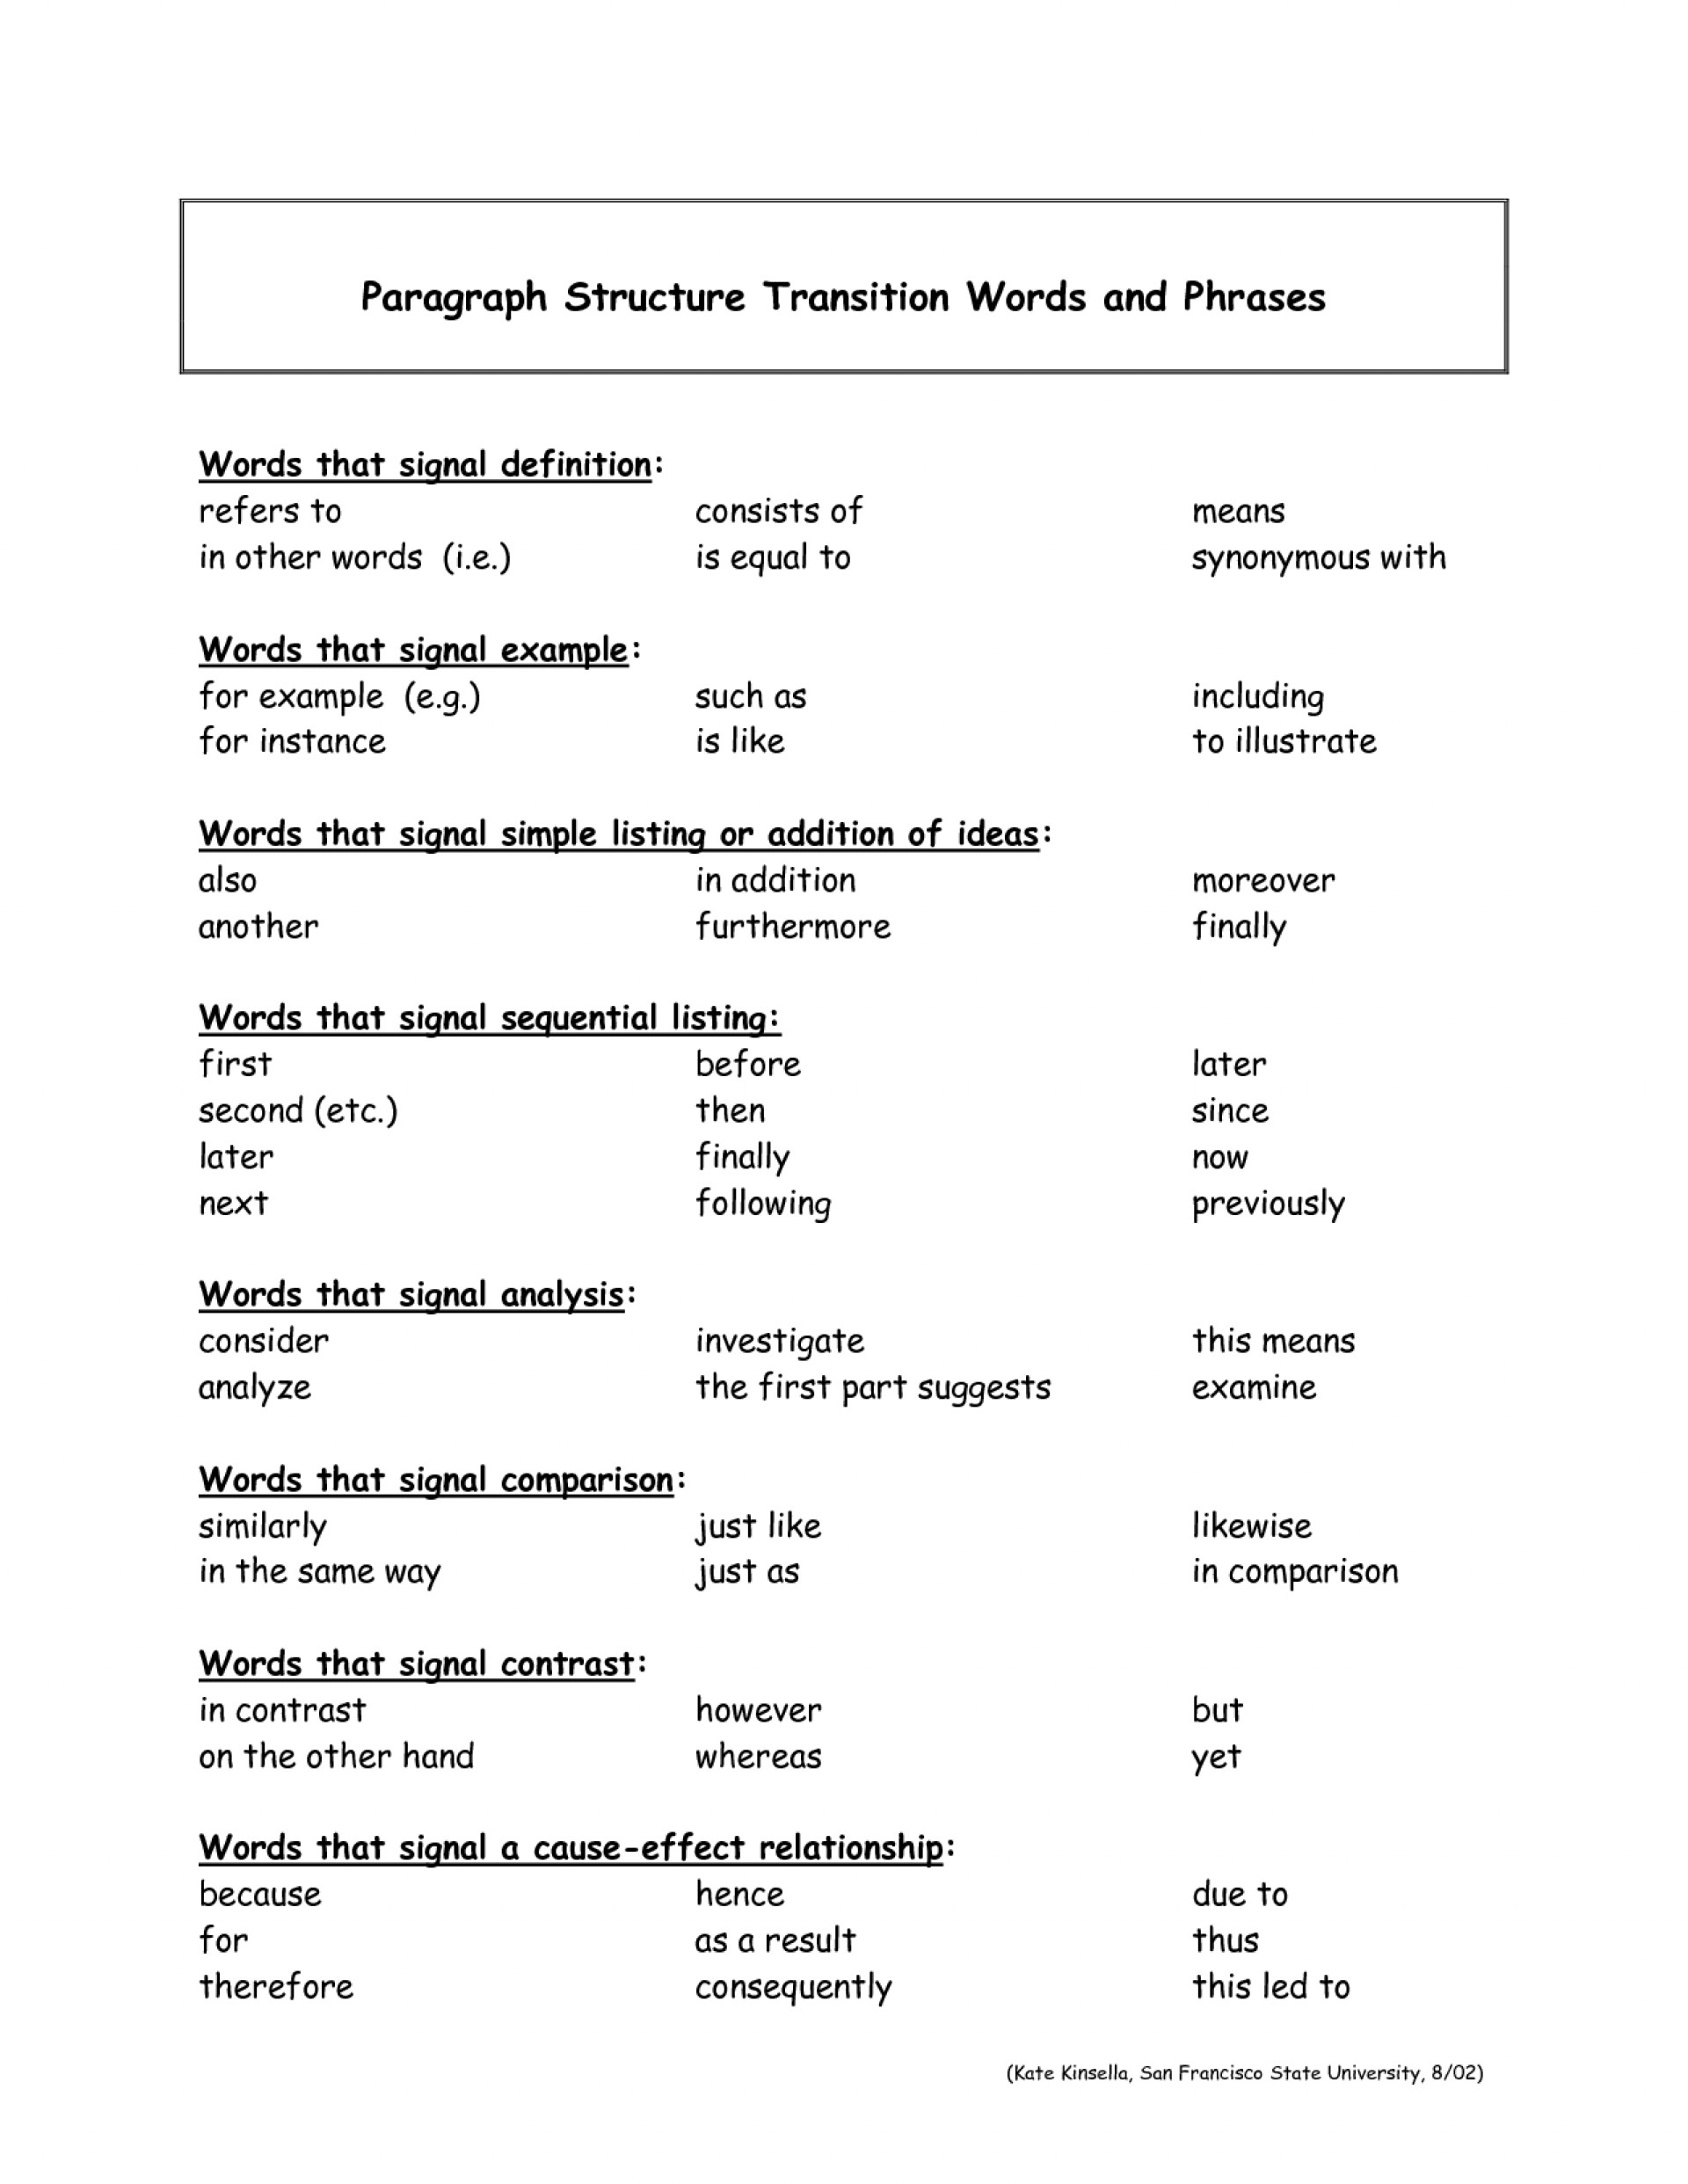 022 Transitional Words And Phrases Help An Essay To Flow